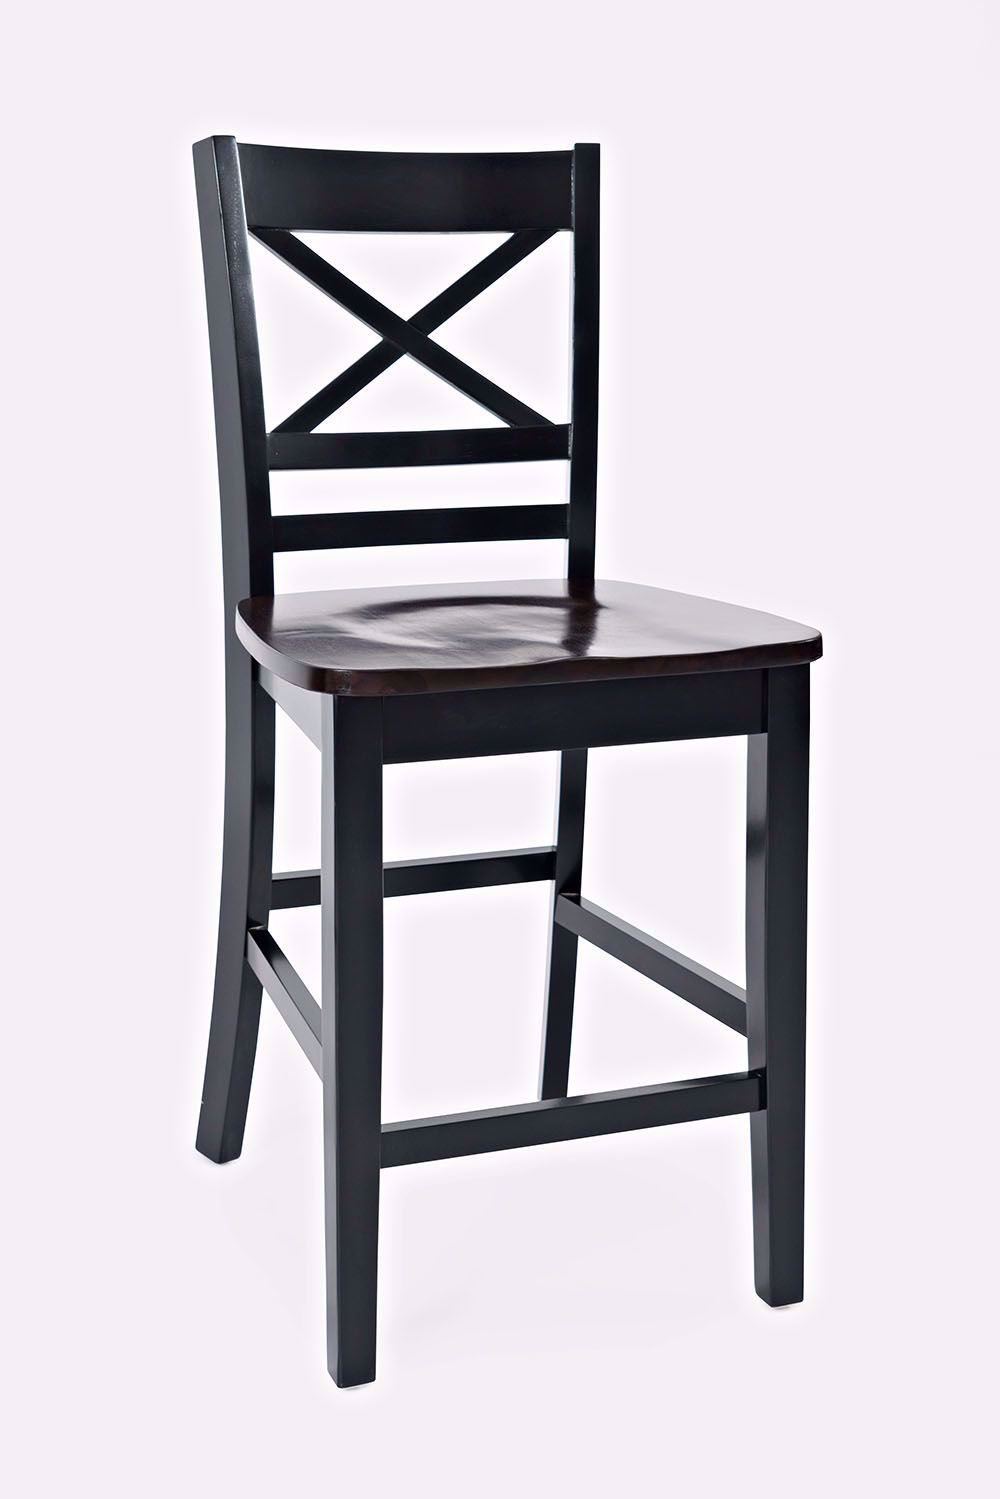 Picture of Asbury Park X Back Stool